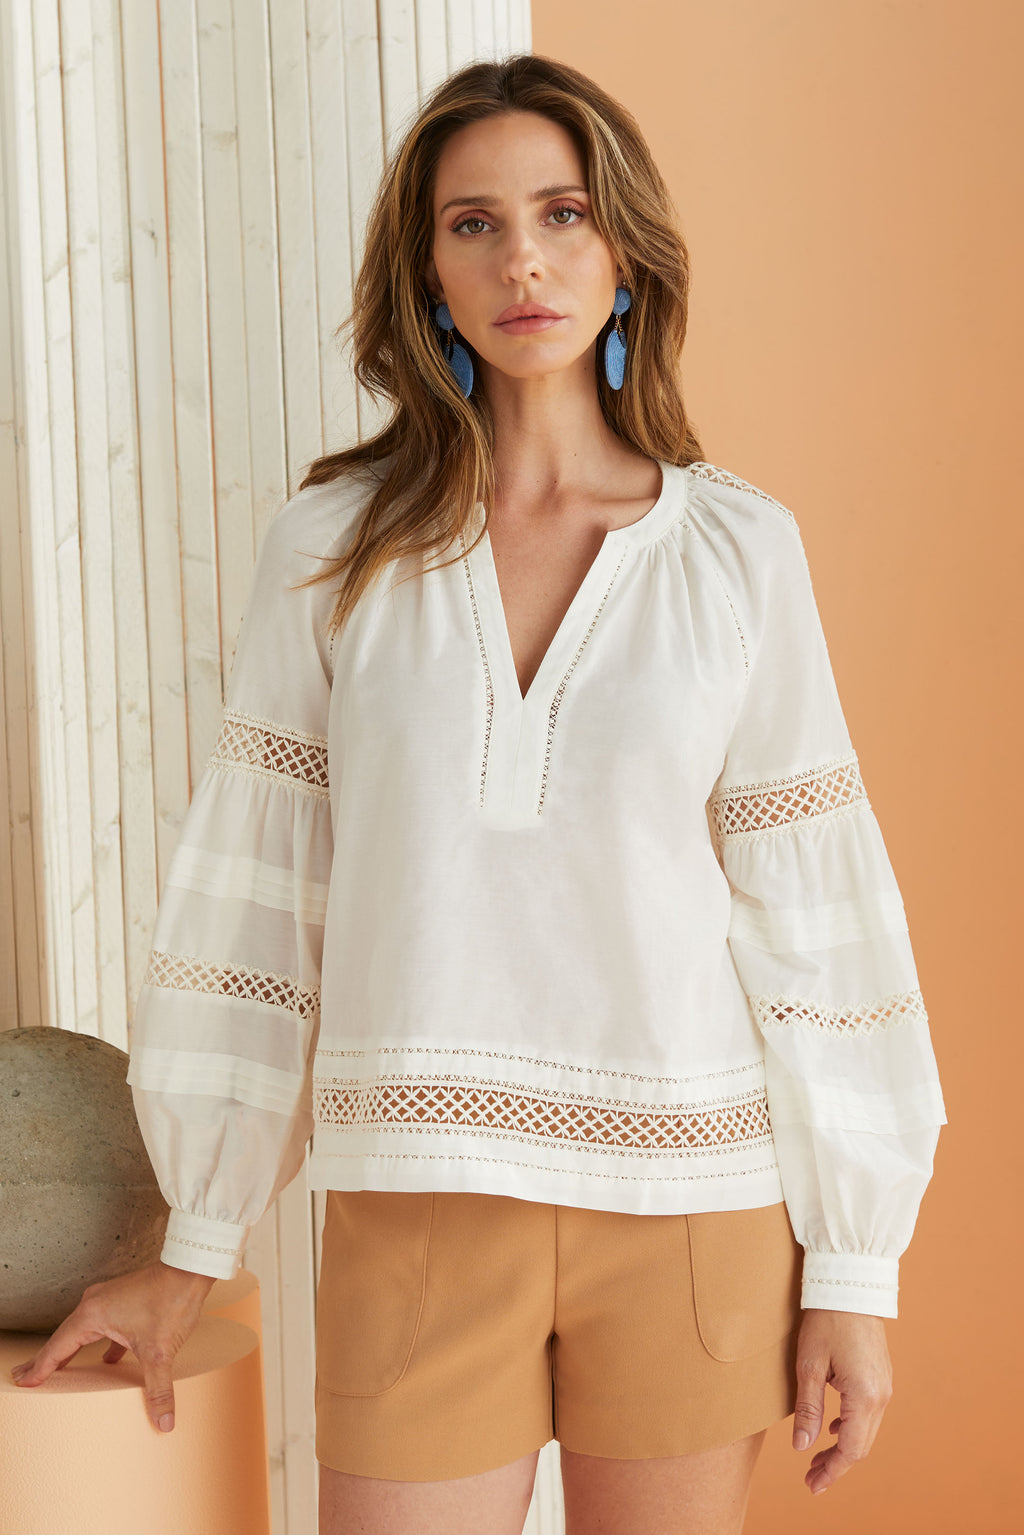 model wearing long sleeve white blouse with nude shorts.